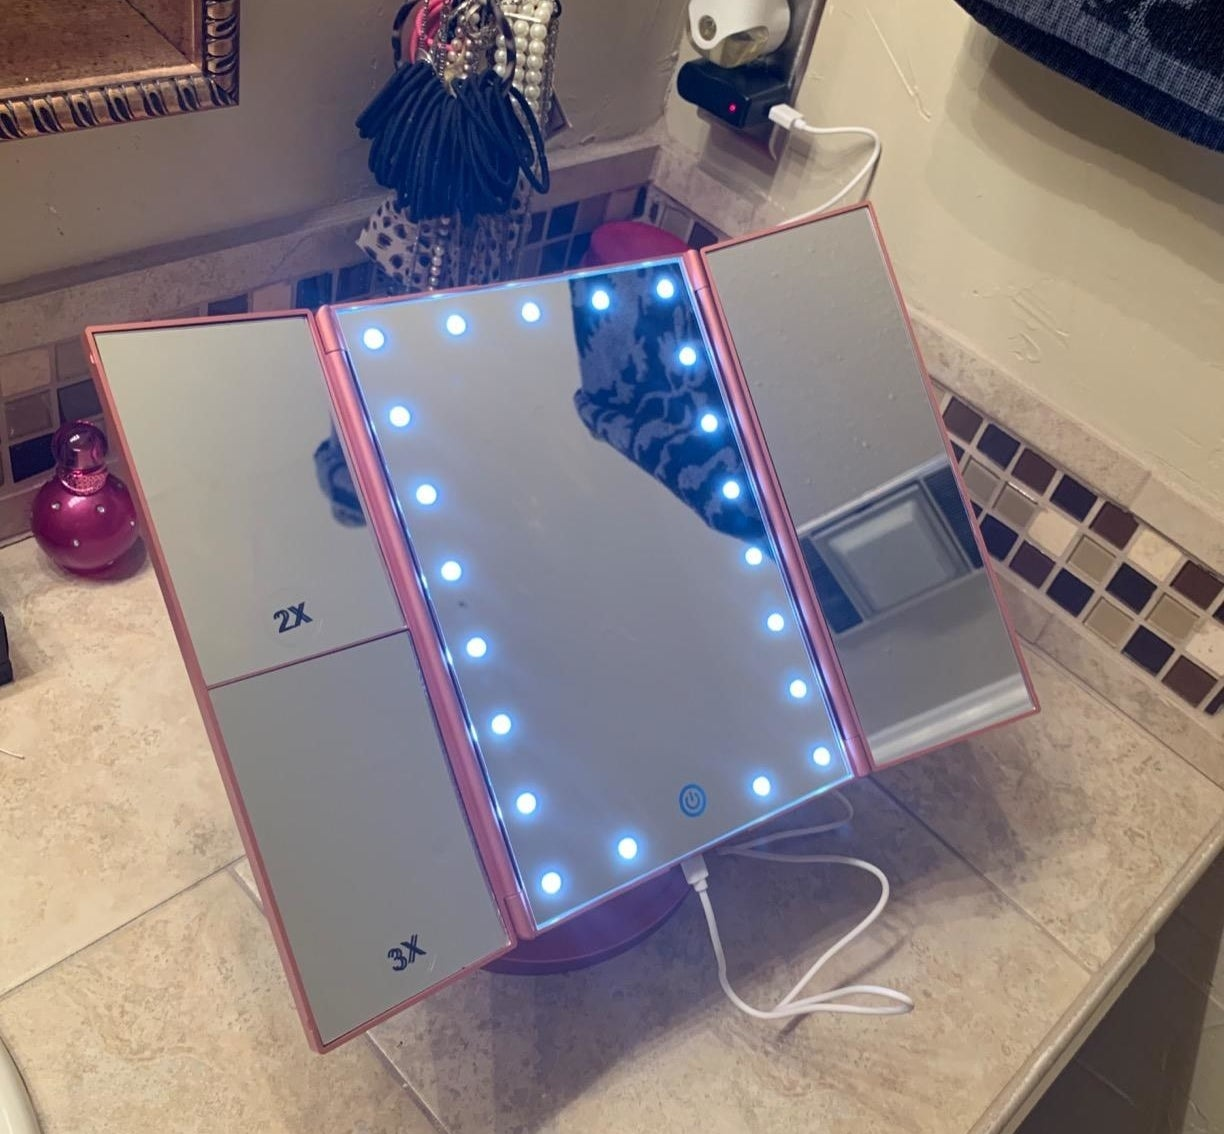 reviewer's lighted makeup mirror in pink on a bathroom counter